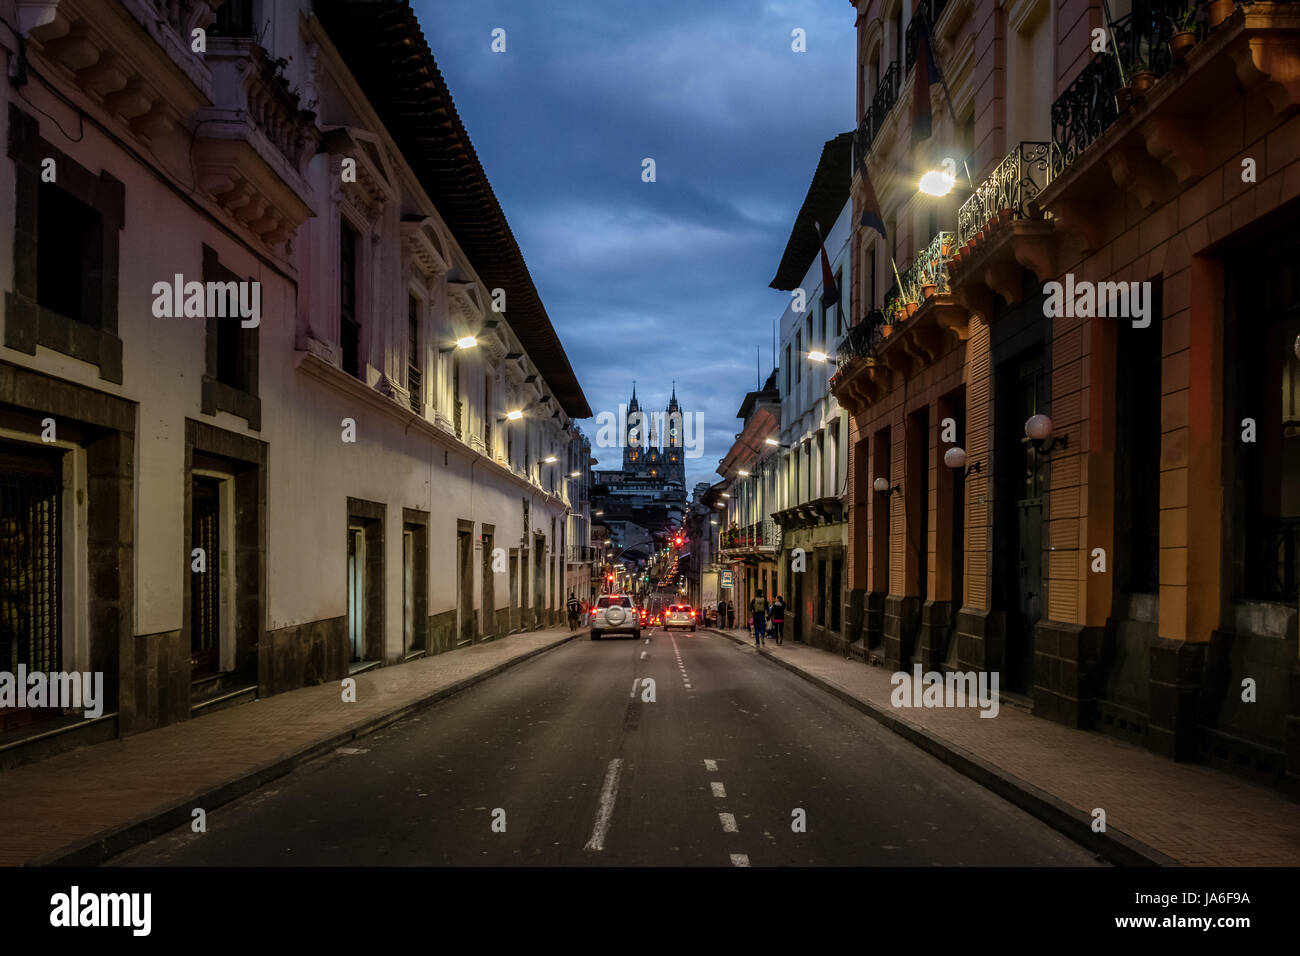 Street of Quito and Basilica del Voto Nacional at night - Quito, Ecuador - Stock Image